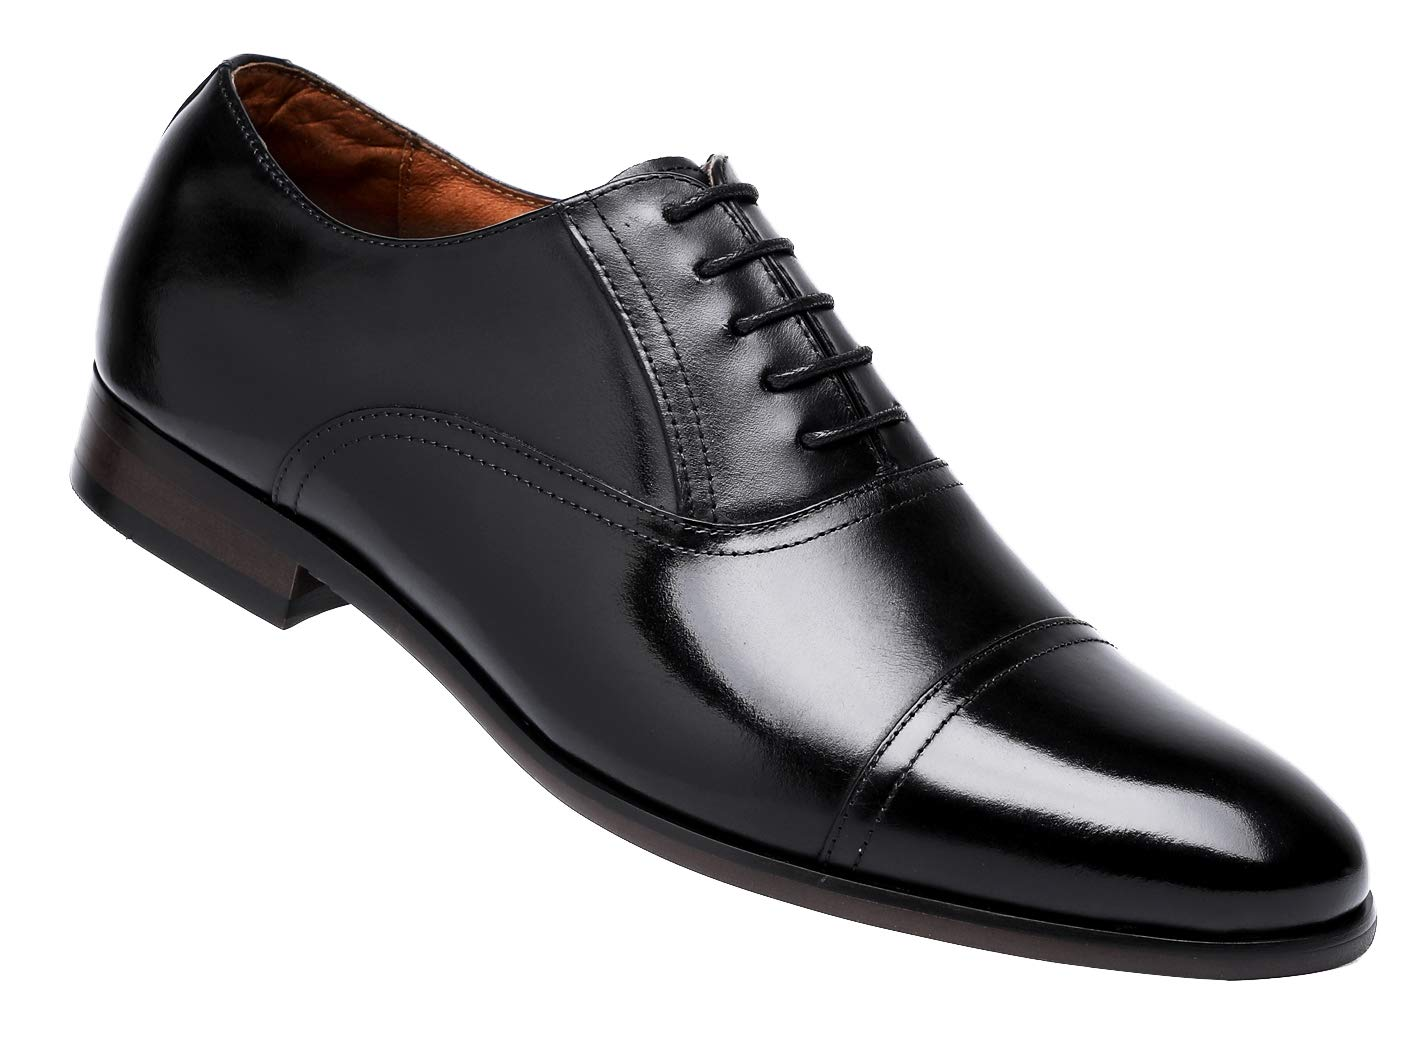 DESAI Men's Leather Dress Shoes Cap Toe Lace-up Oxford (11 M US, Black)